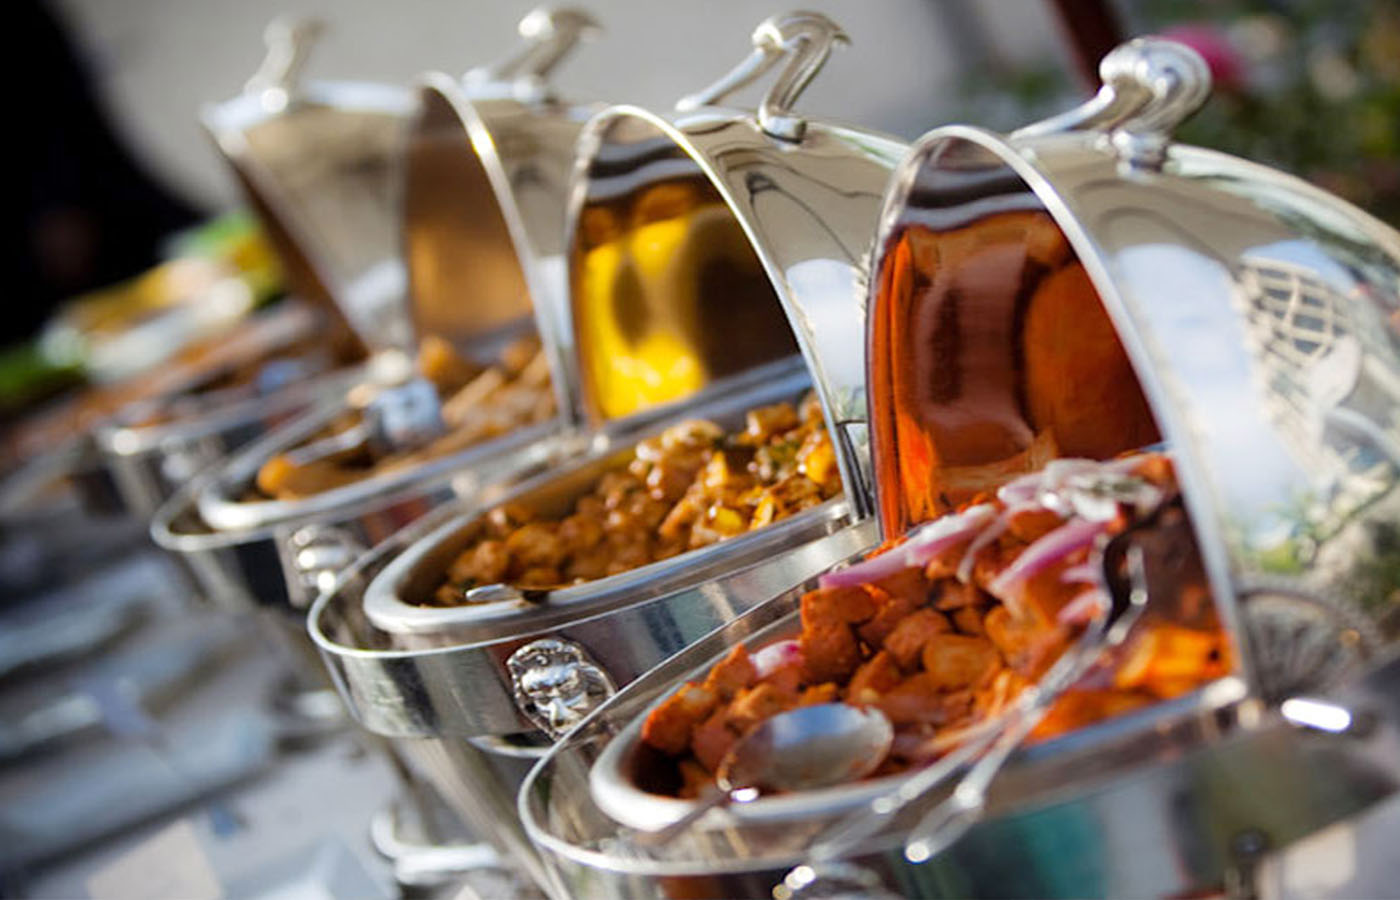 CATERING SERVICES IN MOHALI | Red Tag Caterers | CATERING SERVICES IN MOHALI, CATERING SERVICE IN MOHALI, WEEDING CATERING SERVICES IN MOHALI, OUTDOOR CATERING SERVICES IN MOHALI - GL42922